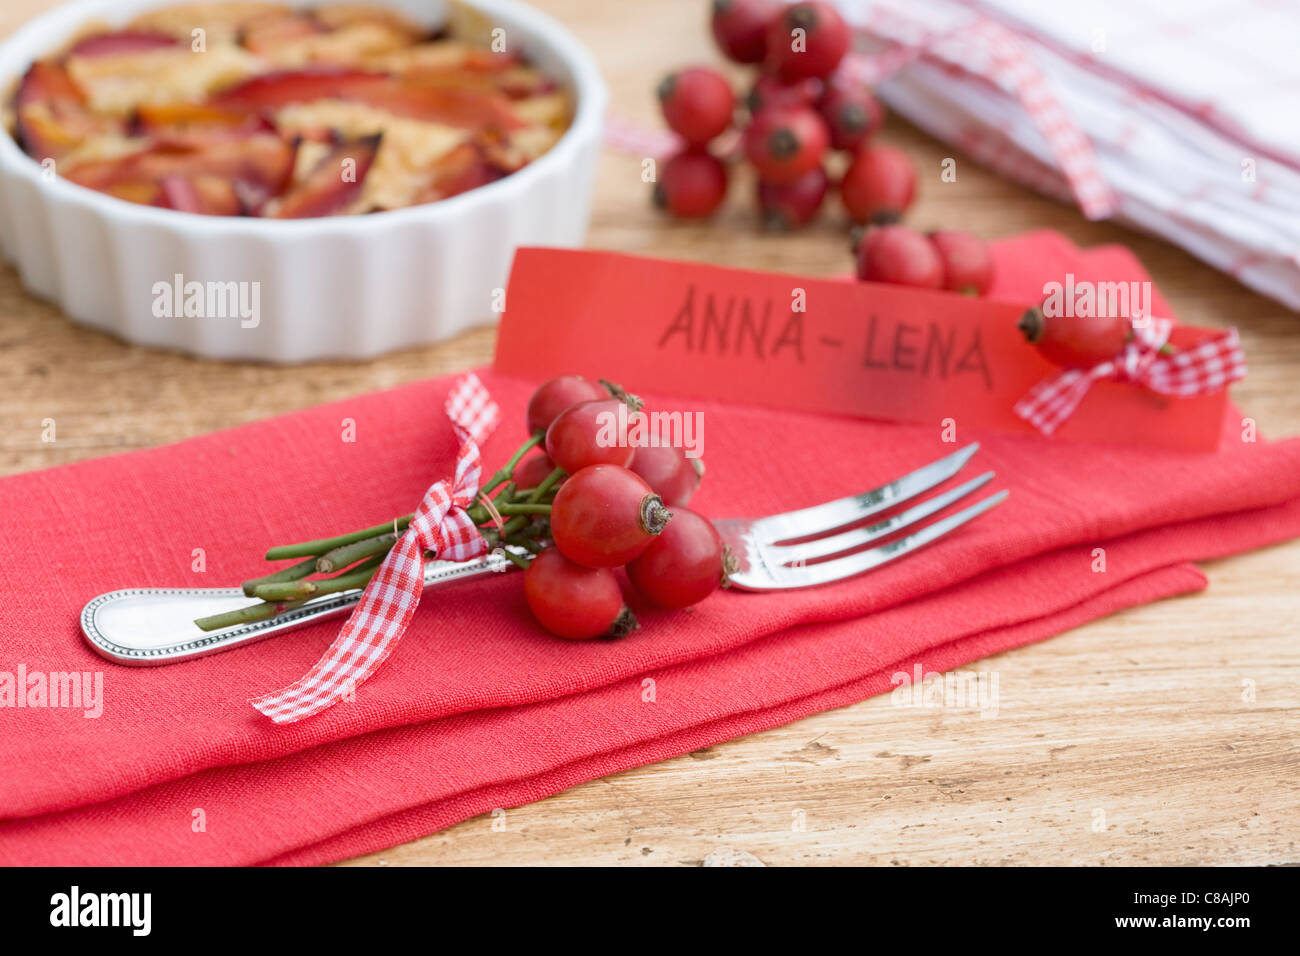 Name-tags and small bunches of rose hips - Stock Image